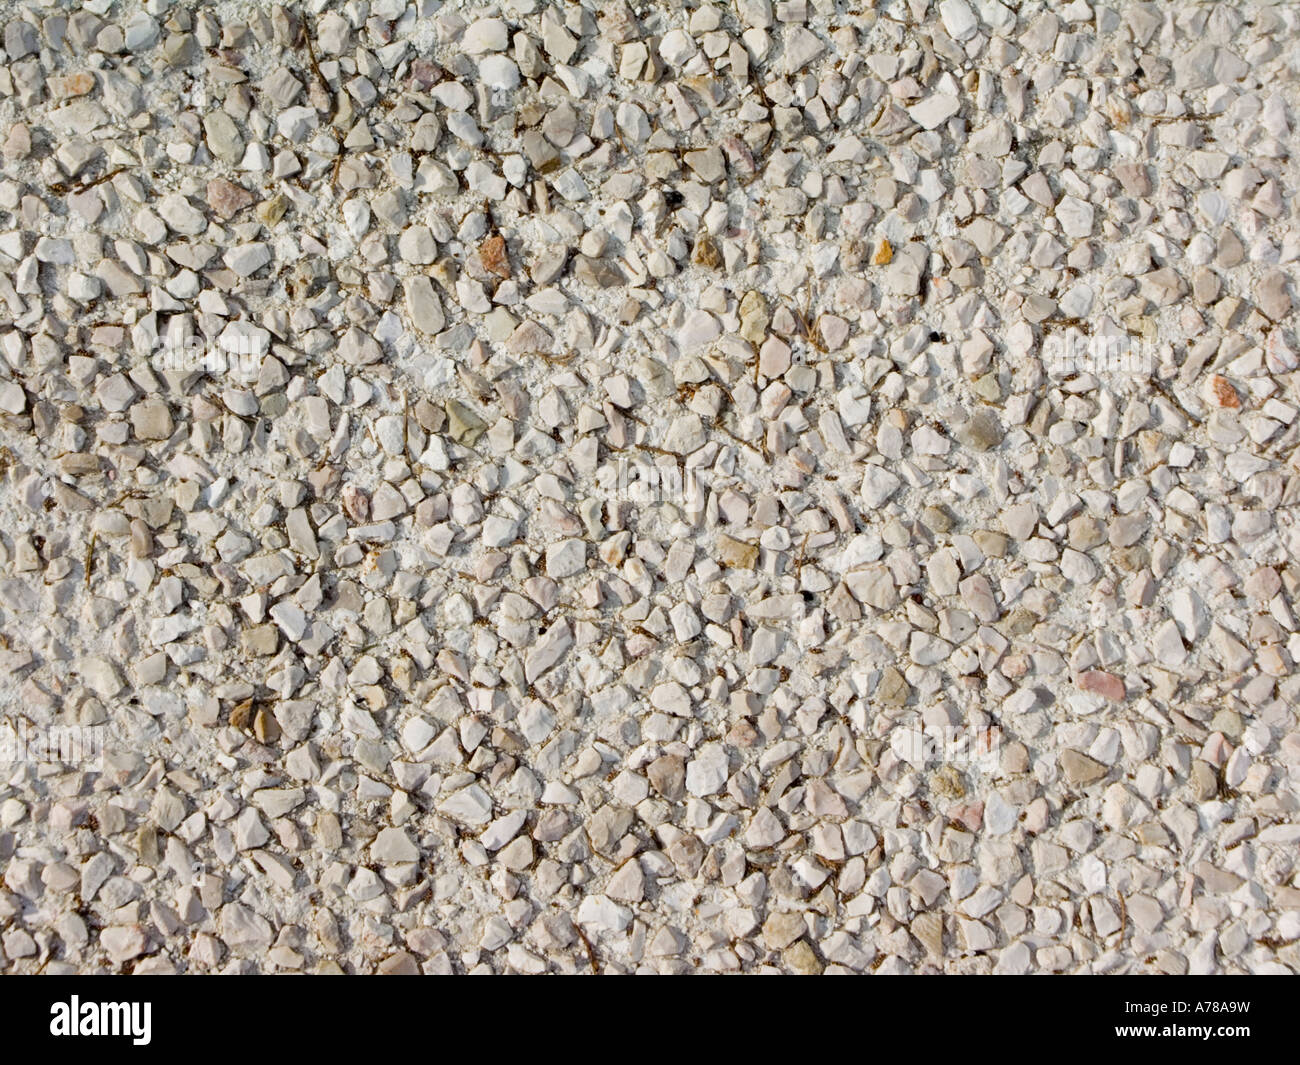 Ivory pebbles interior and exterior stone finish texture for Exterior background